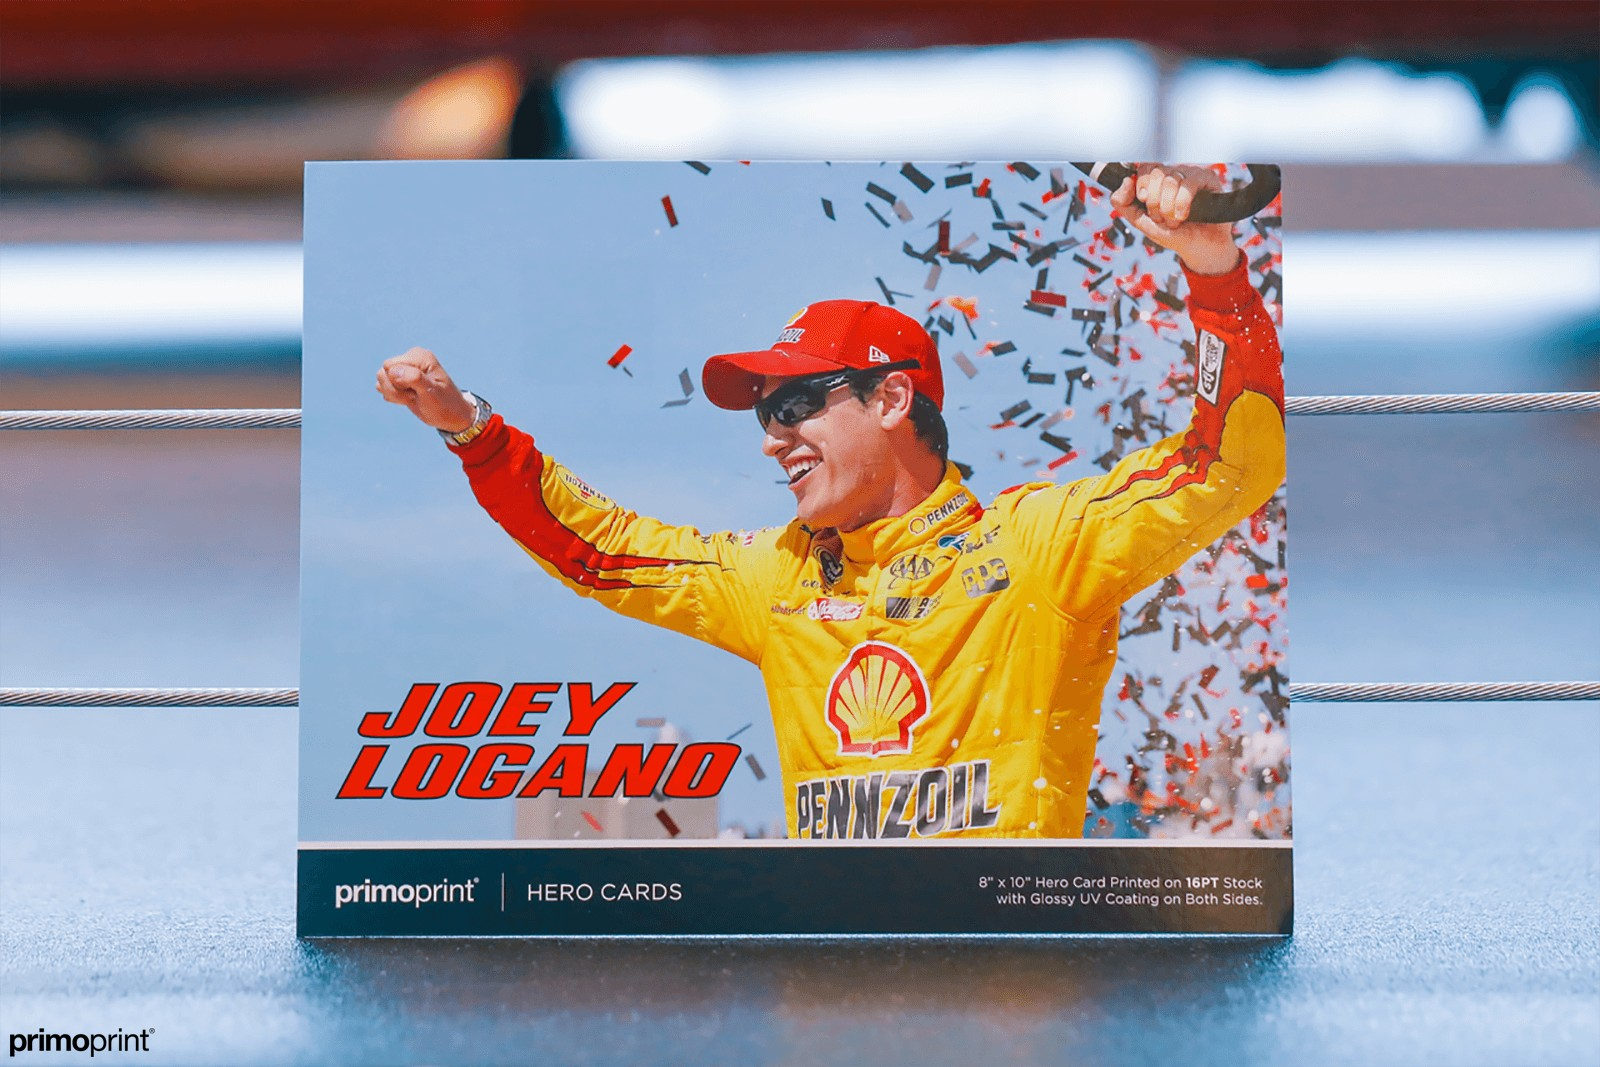 Glossy UV Coated Hero Cards provides a shiny coating that enhances the photos and colors. Great for any race car driver!